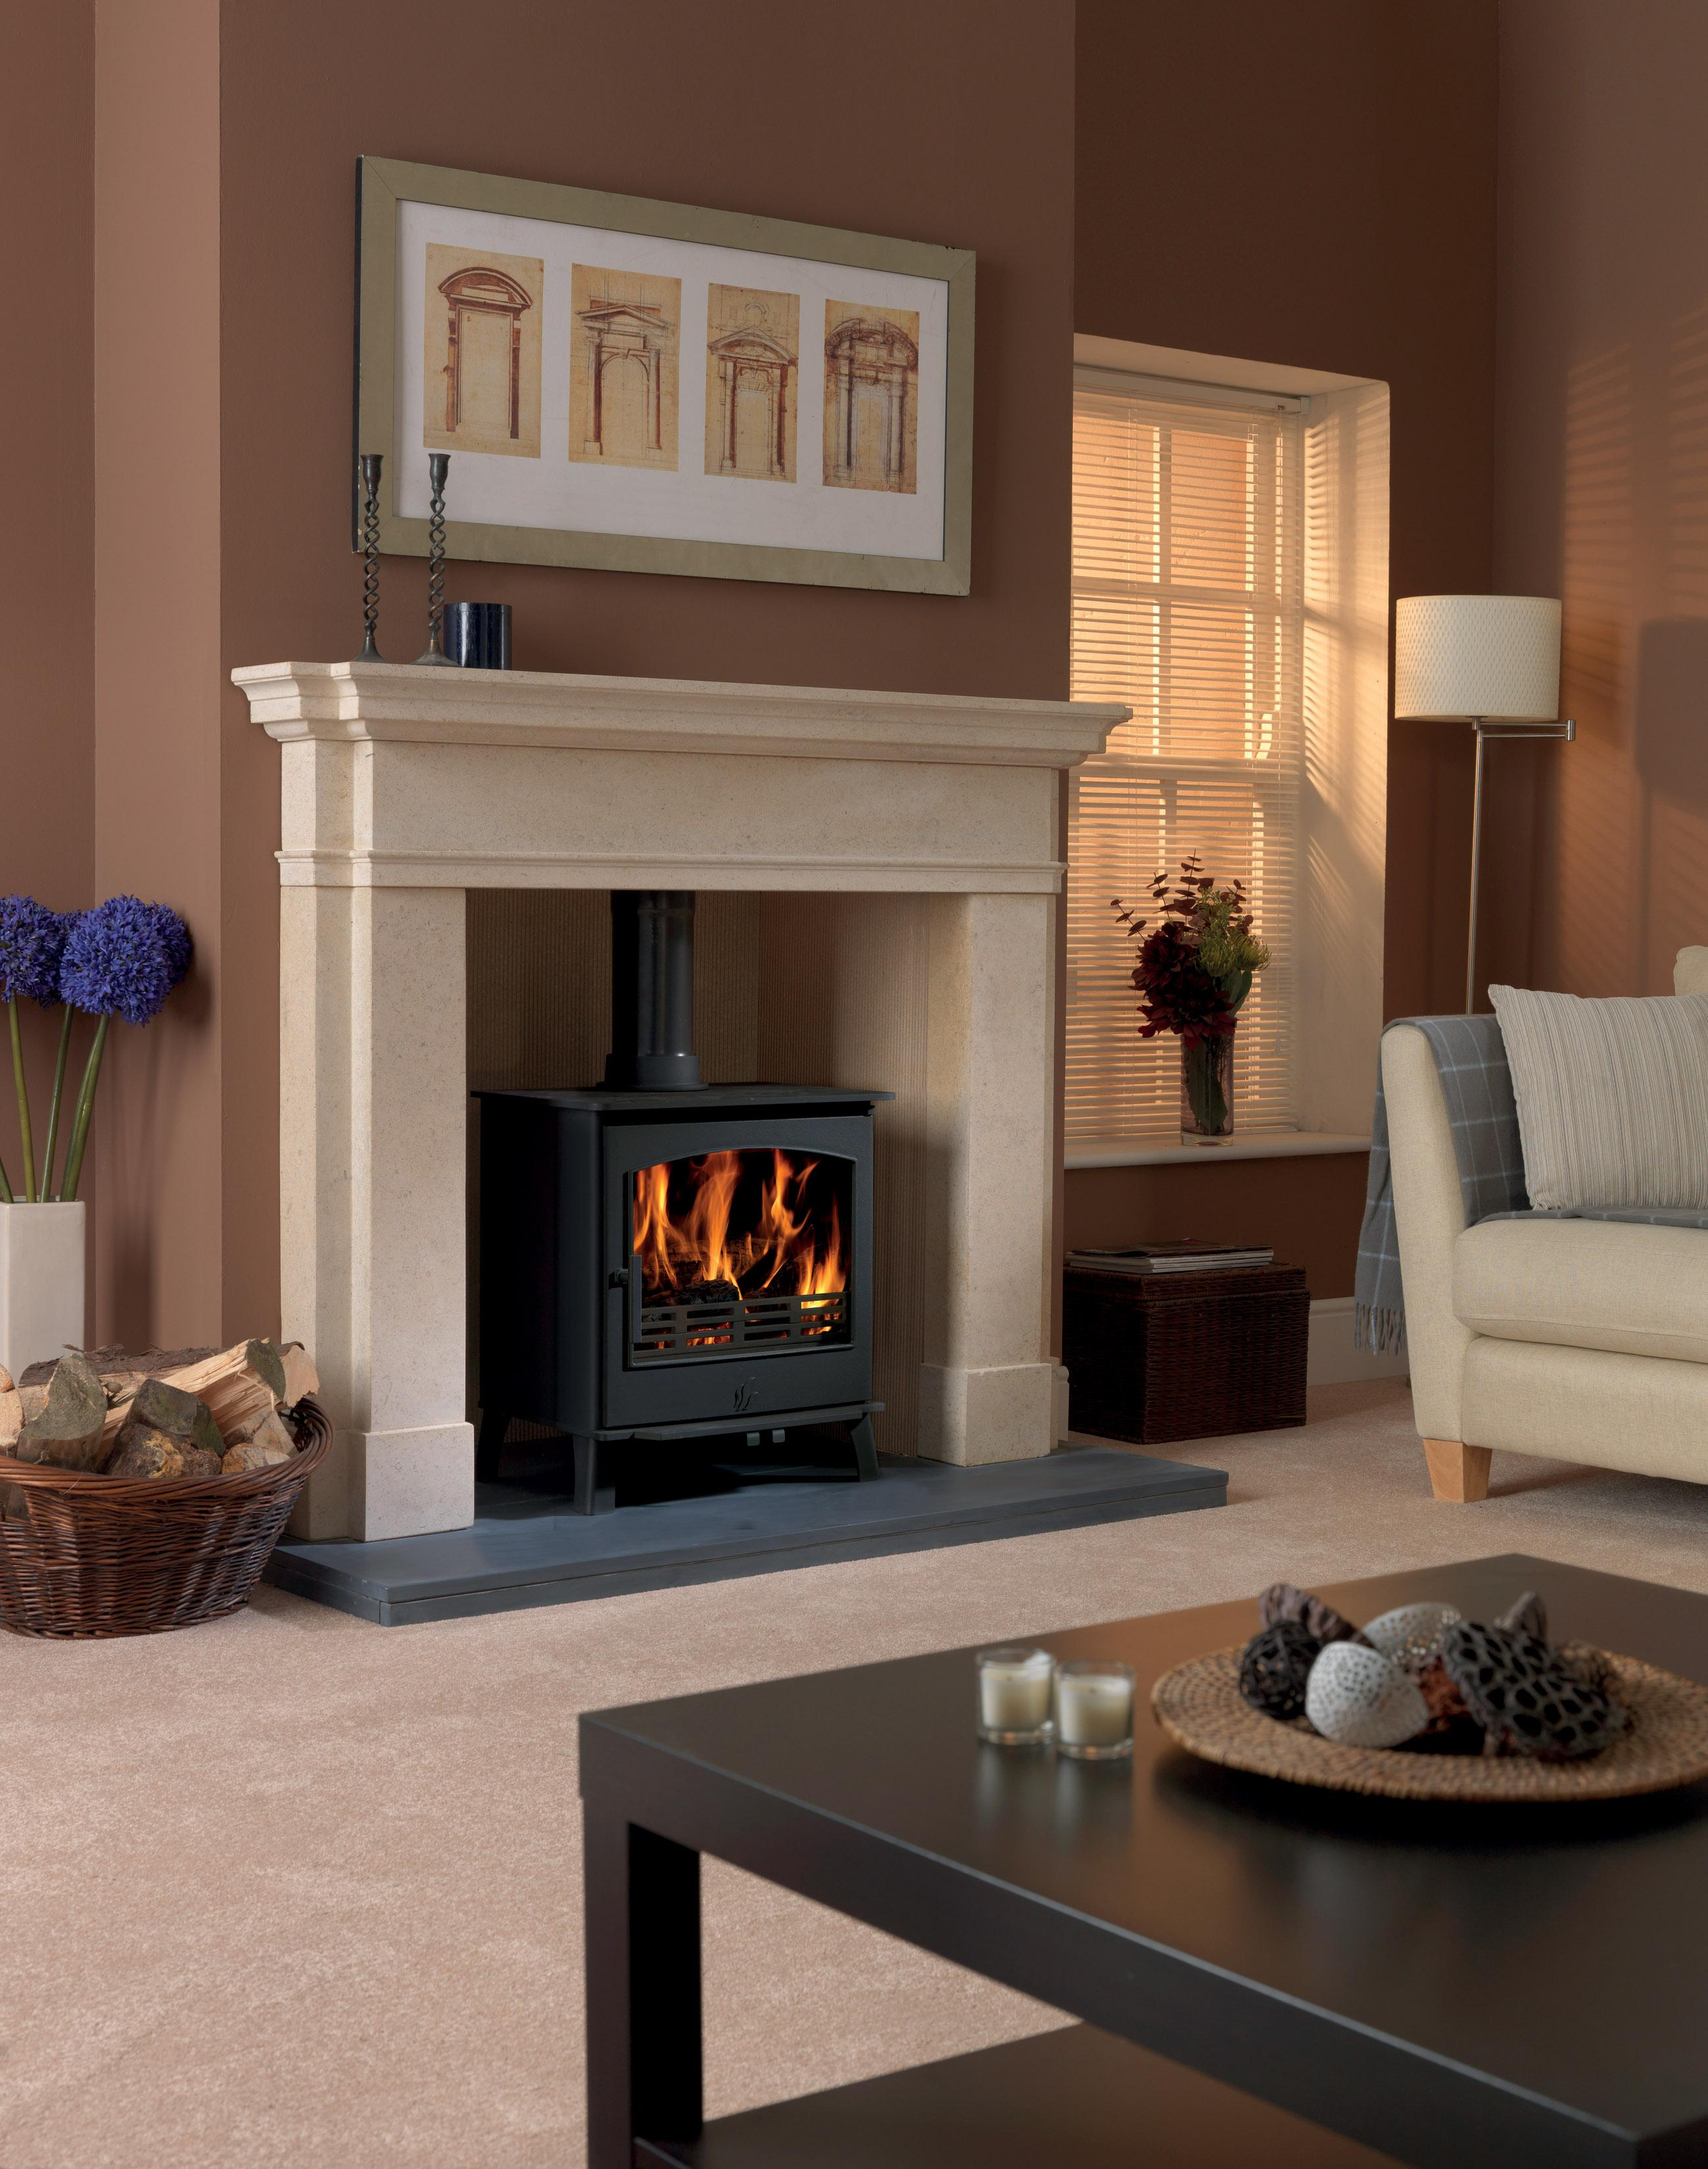 5kW Astwood Multi Fuel Stove